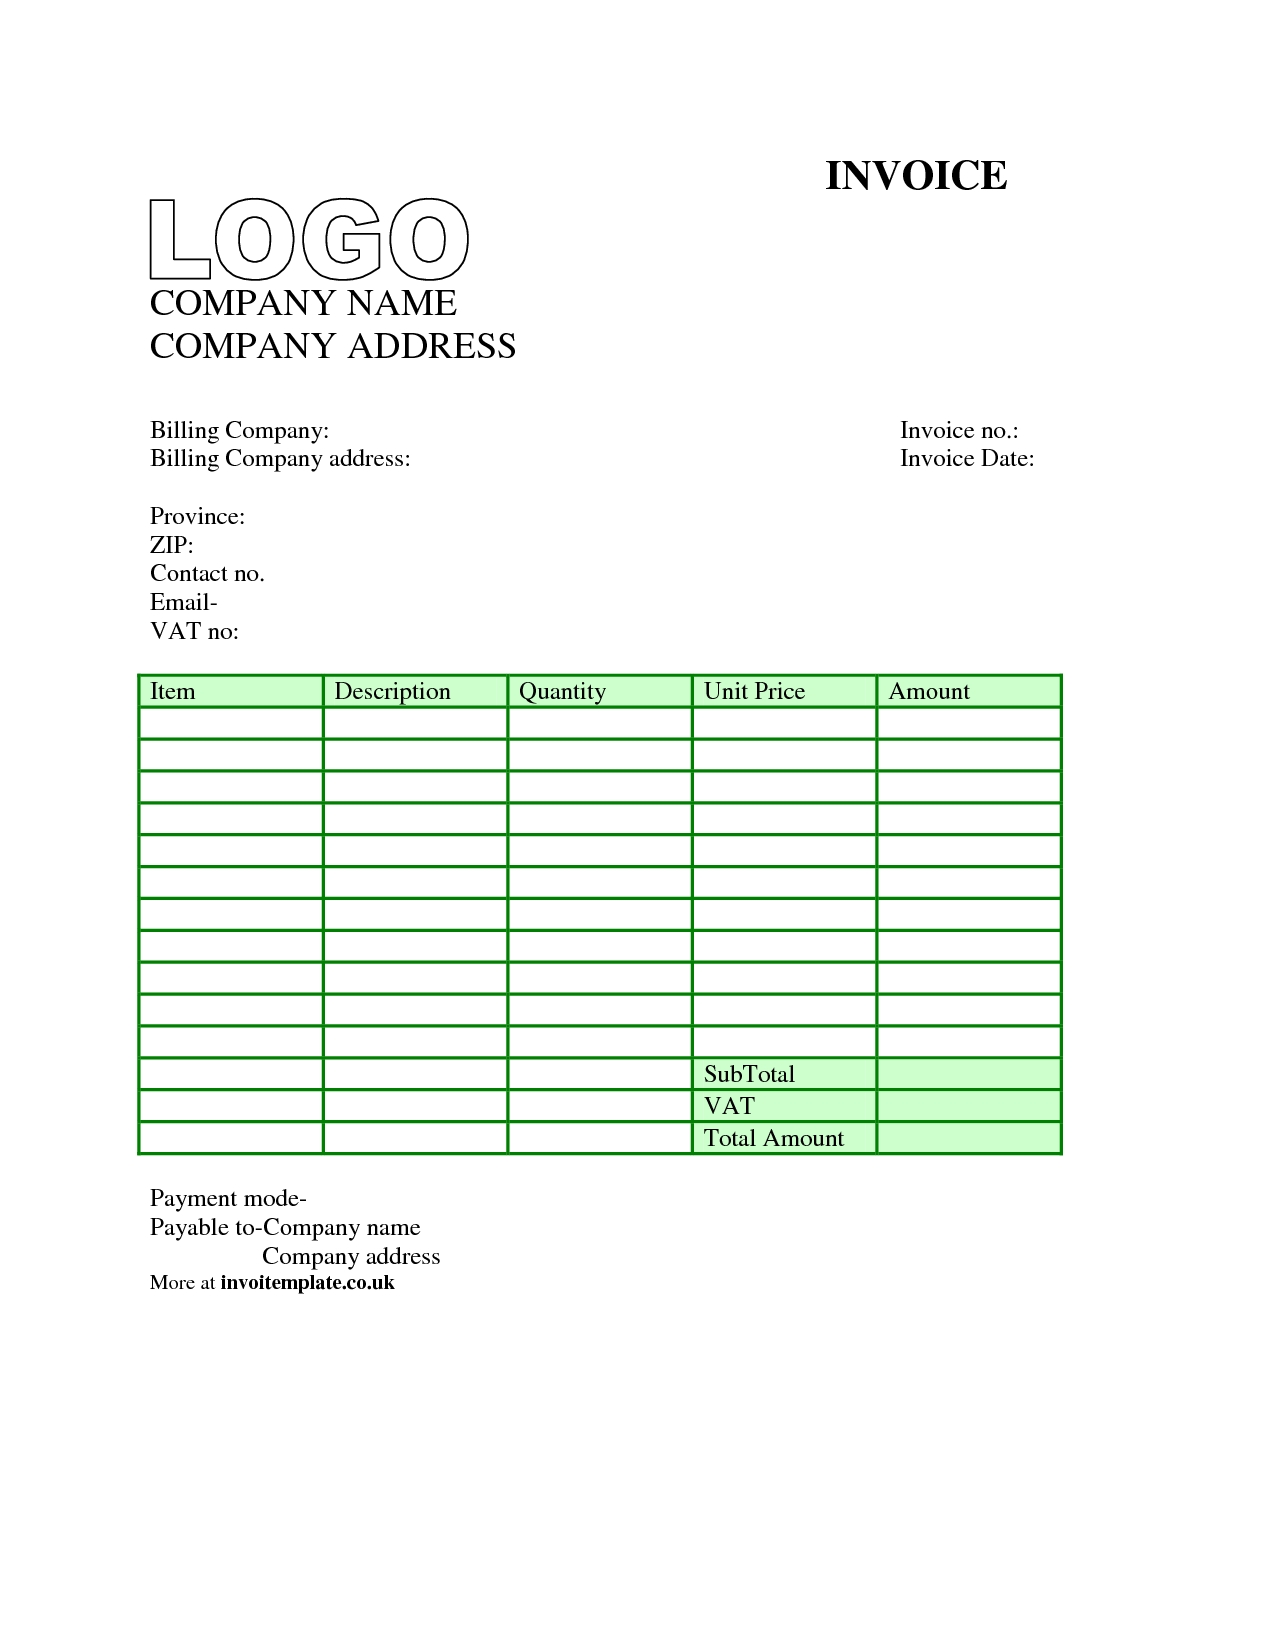 free invoice template for word microsoft word invoice template free download pay stub samples 1275 X 1650